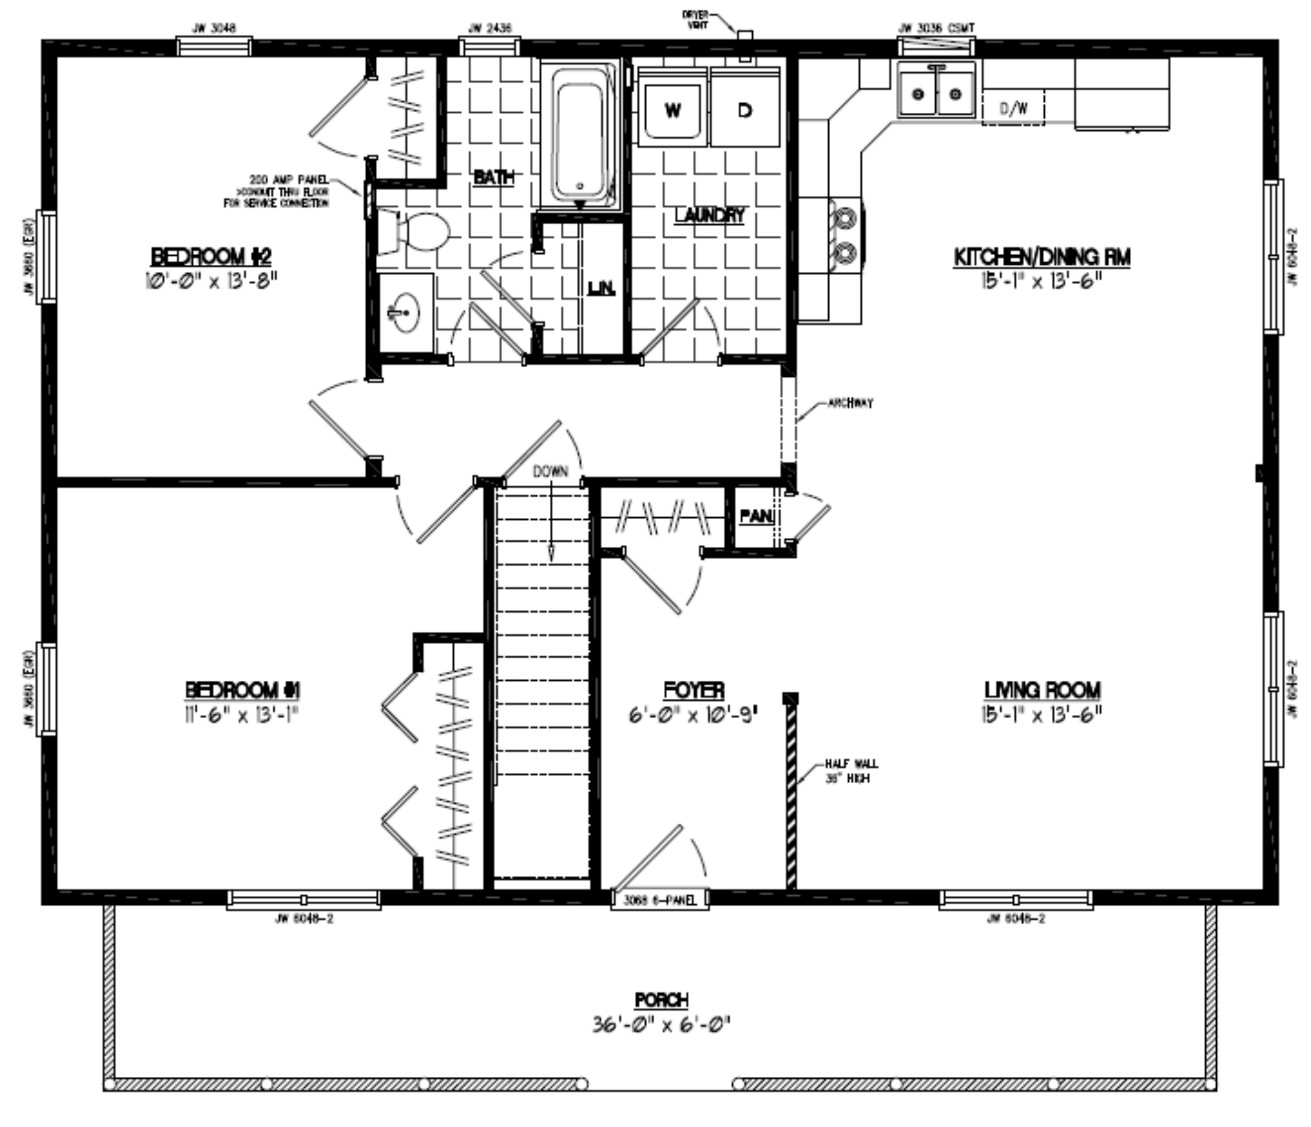 Home Design Plans Video: Musketeer Certified Home Floor Plans